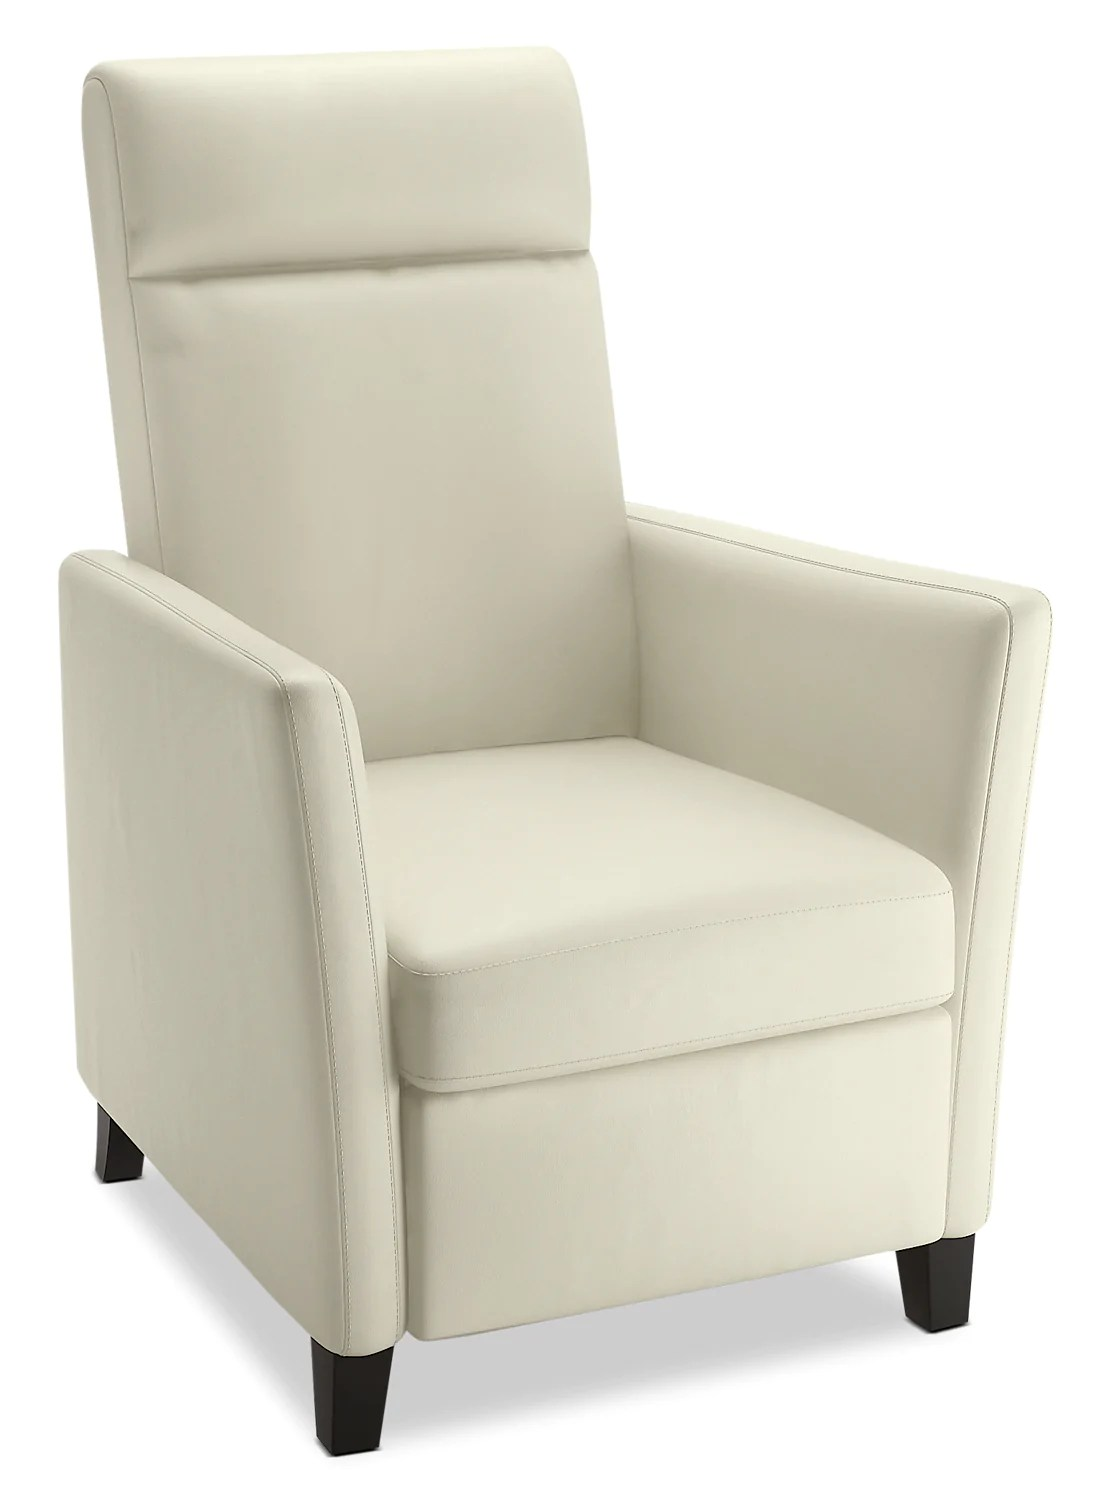 Modern Recliner Chair Zoe Bonded Leather Modern Accent Reclining Chair White